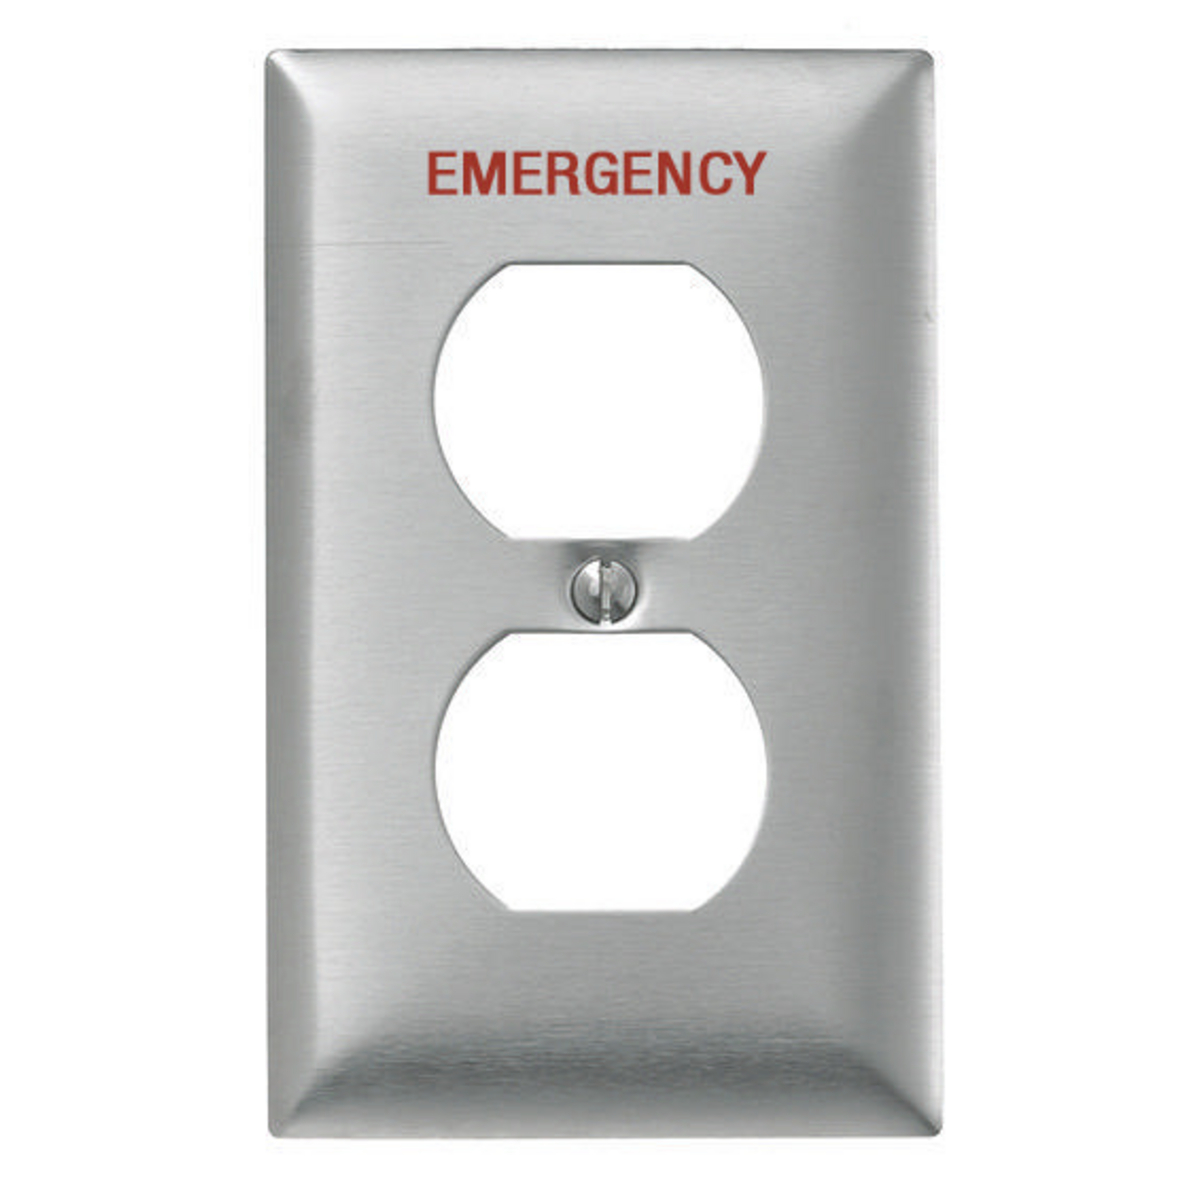 Hubbell SS8MEV 1-Gang Stainless Steel 1-Duplex Receptacle Emergency Pre-Marked Wallplate